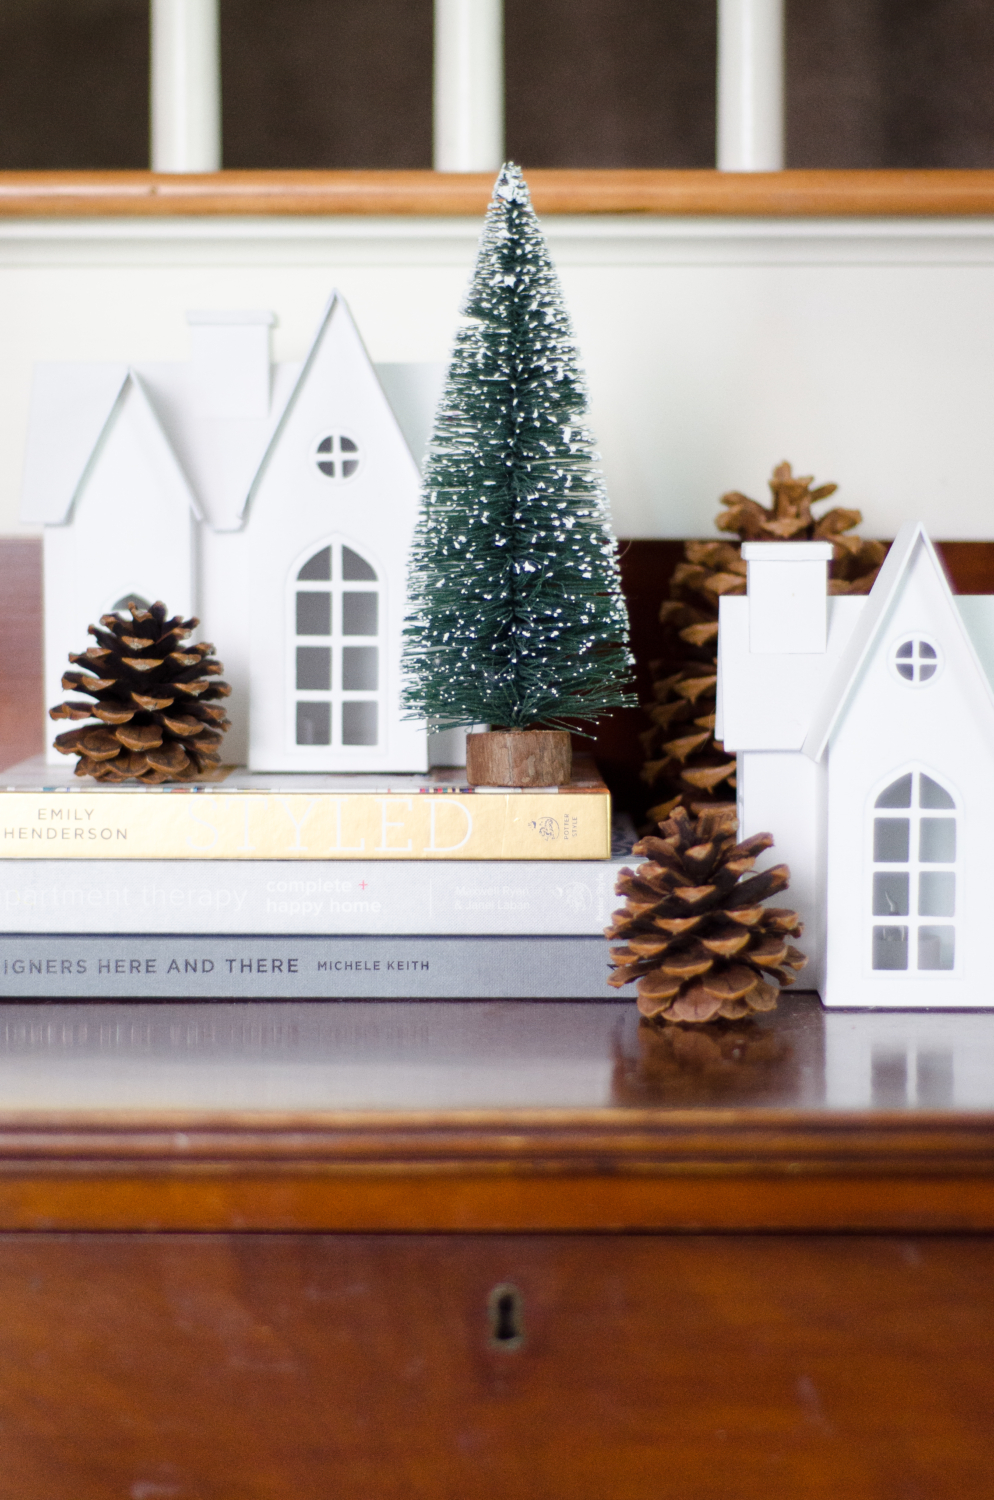 Neutral Christmas vignette with white village houses, bottle brush trees, and pinecones.